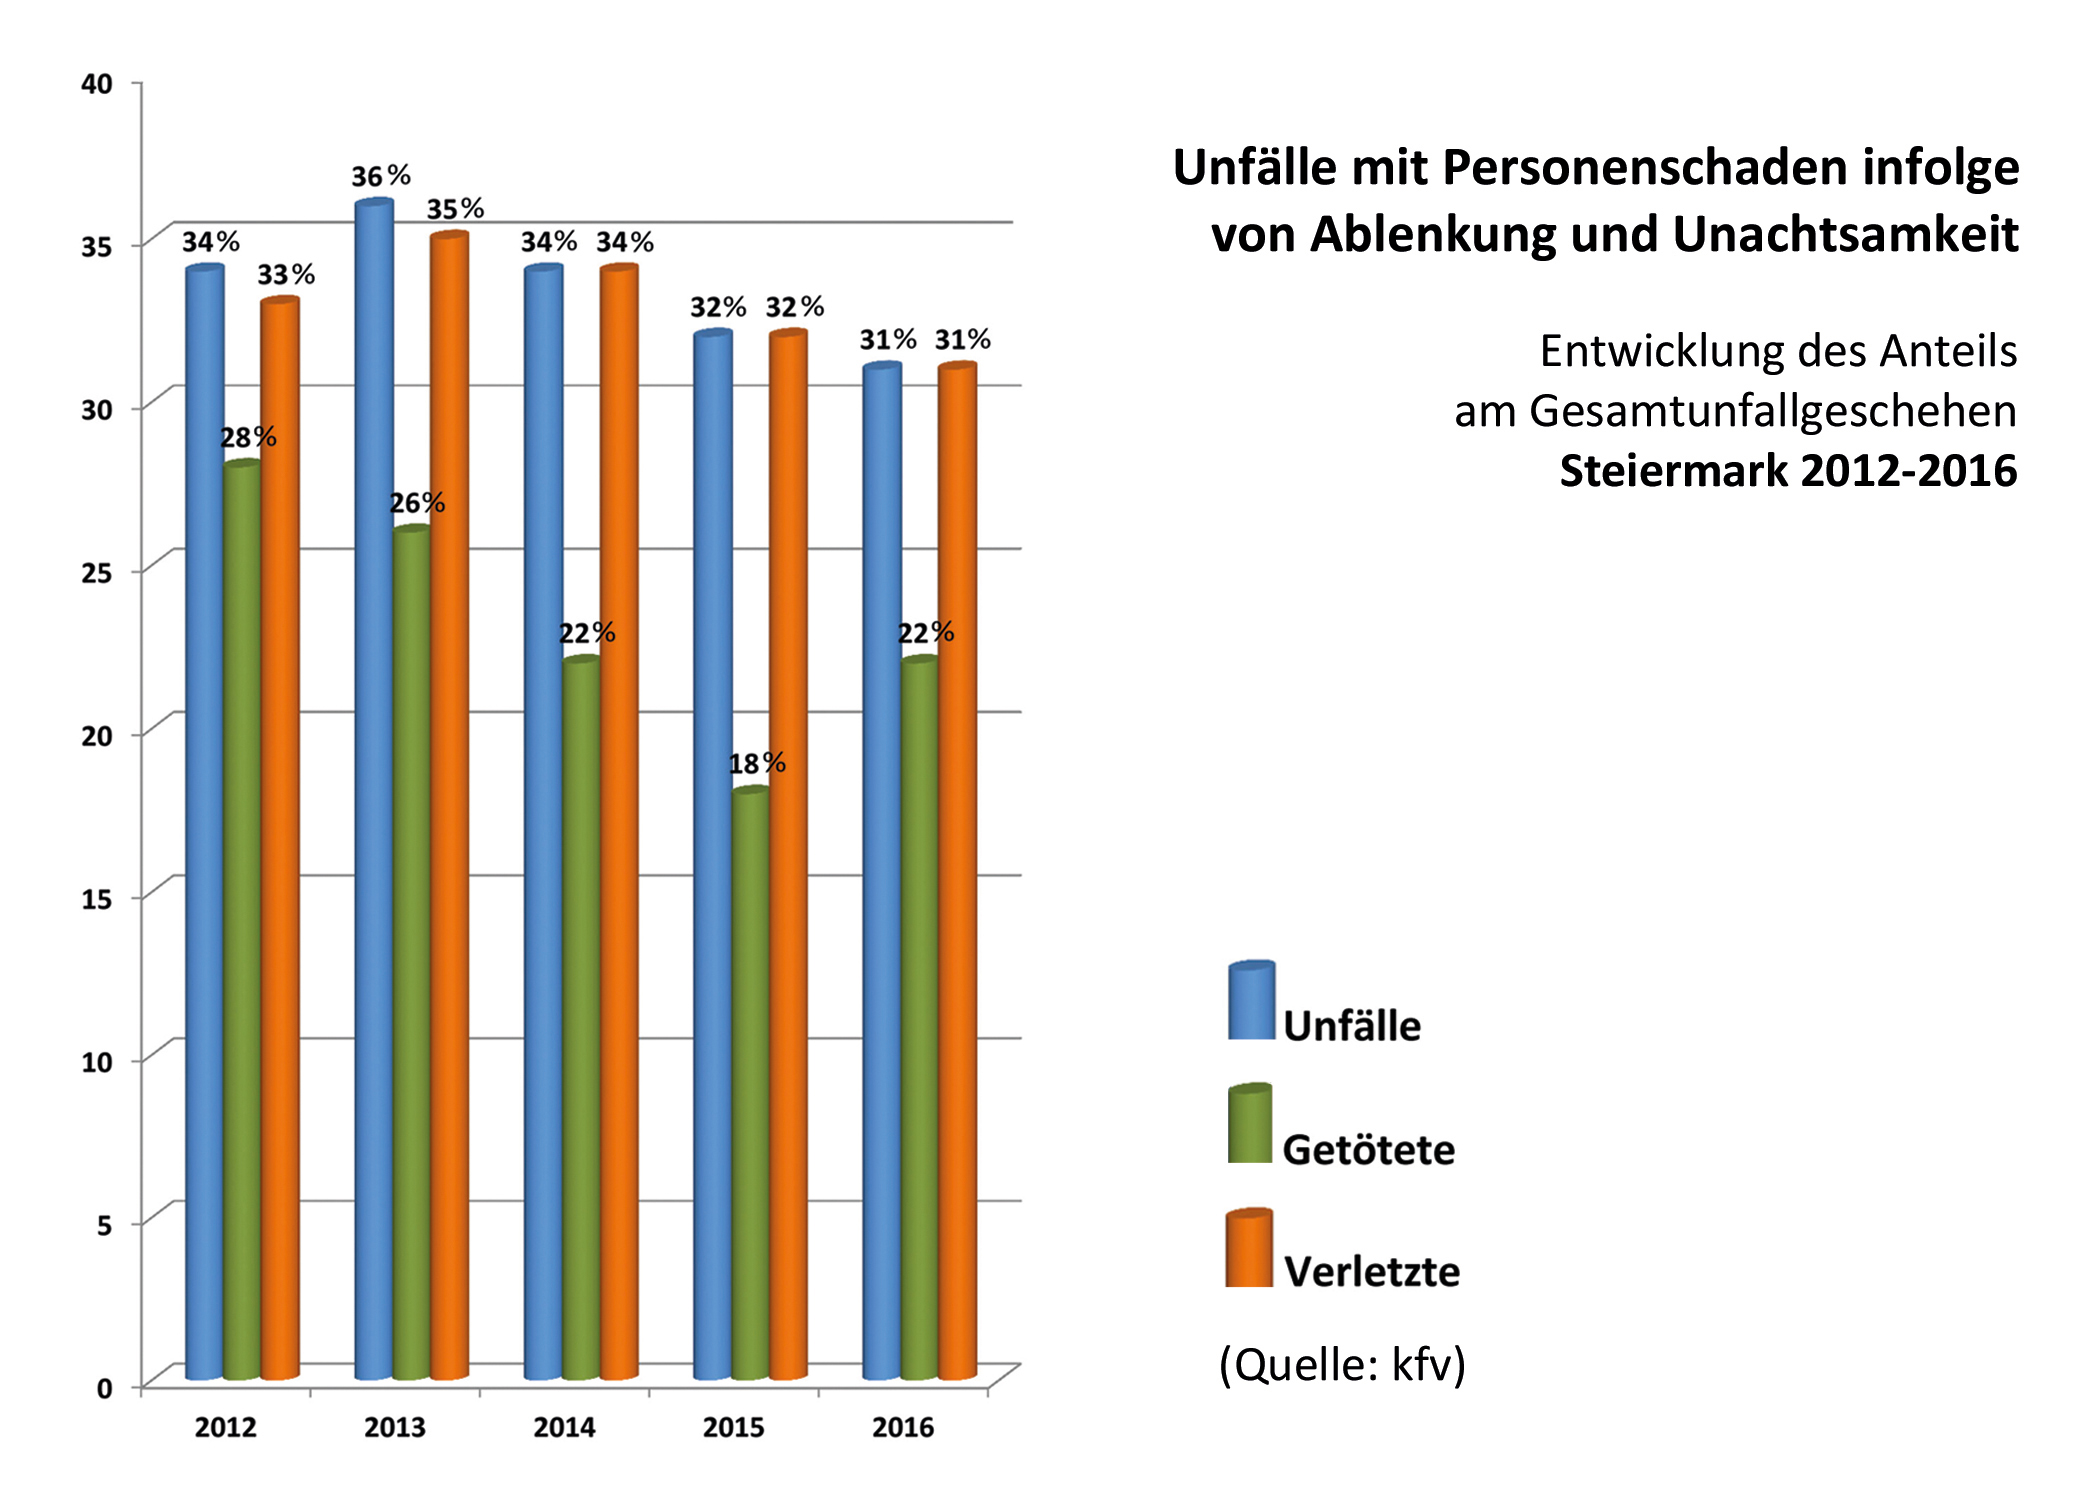 Unfälle 2012 bis 2016 Ablenkung